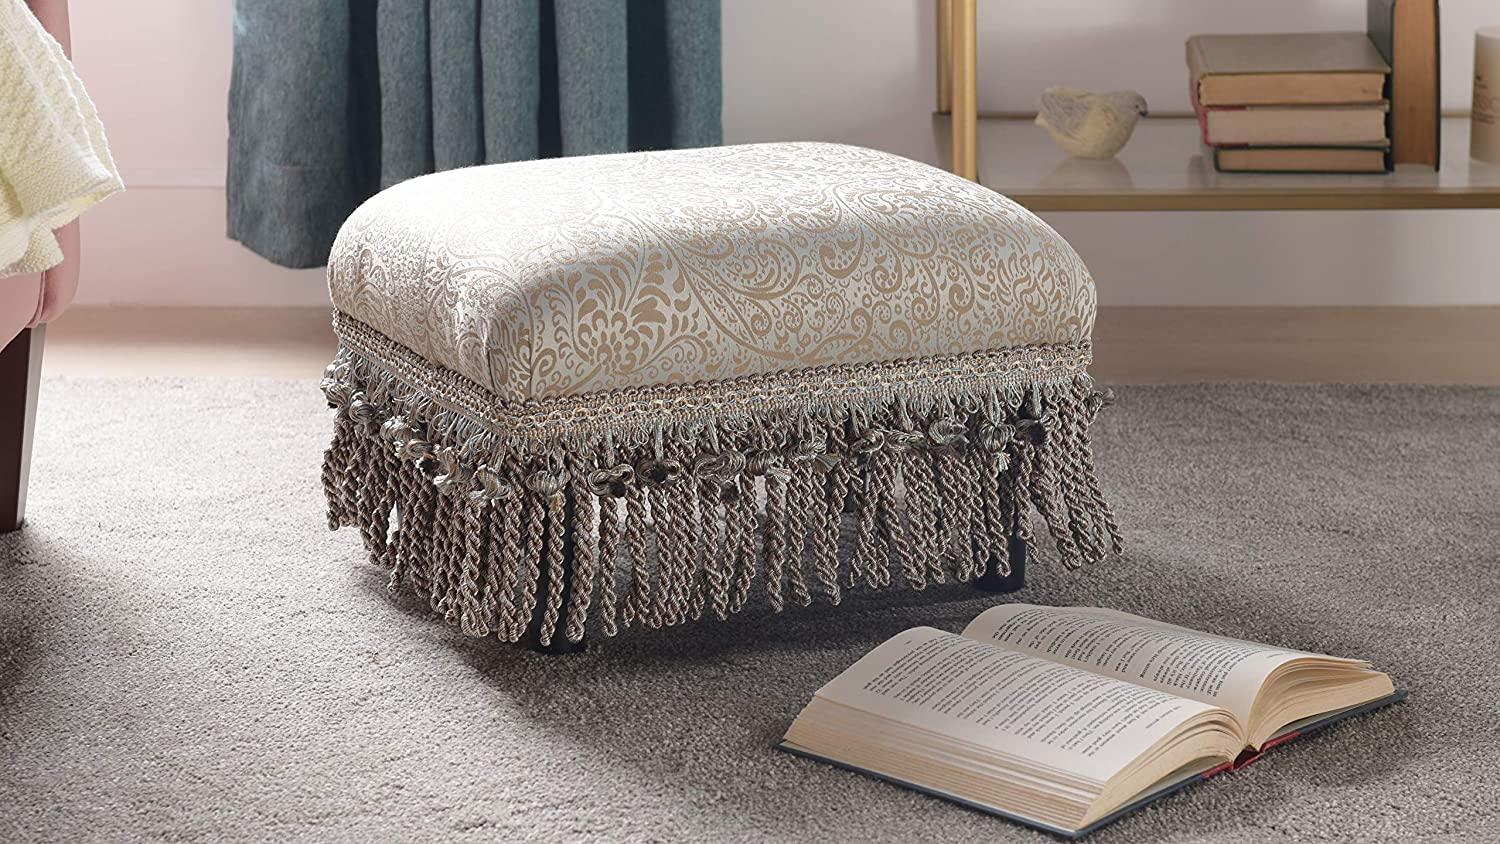 Jennifer Taylor Home Fiona Collection Traditional Style Upholstered Fringed and Tasseled Rectangular Wood Framed Footstool, Neutral